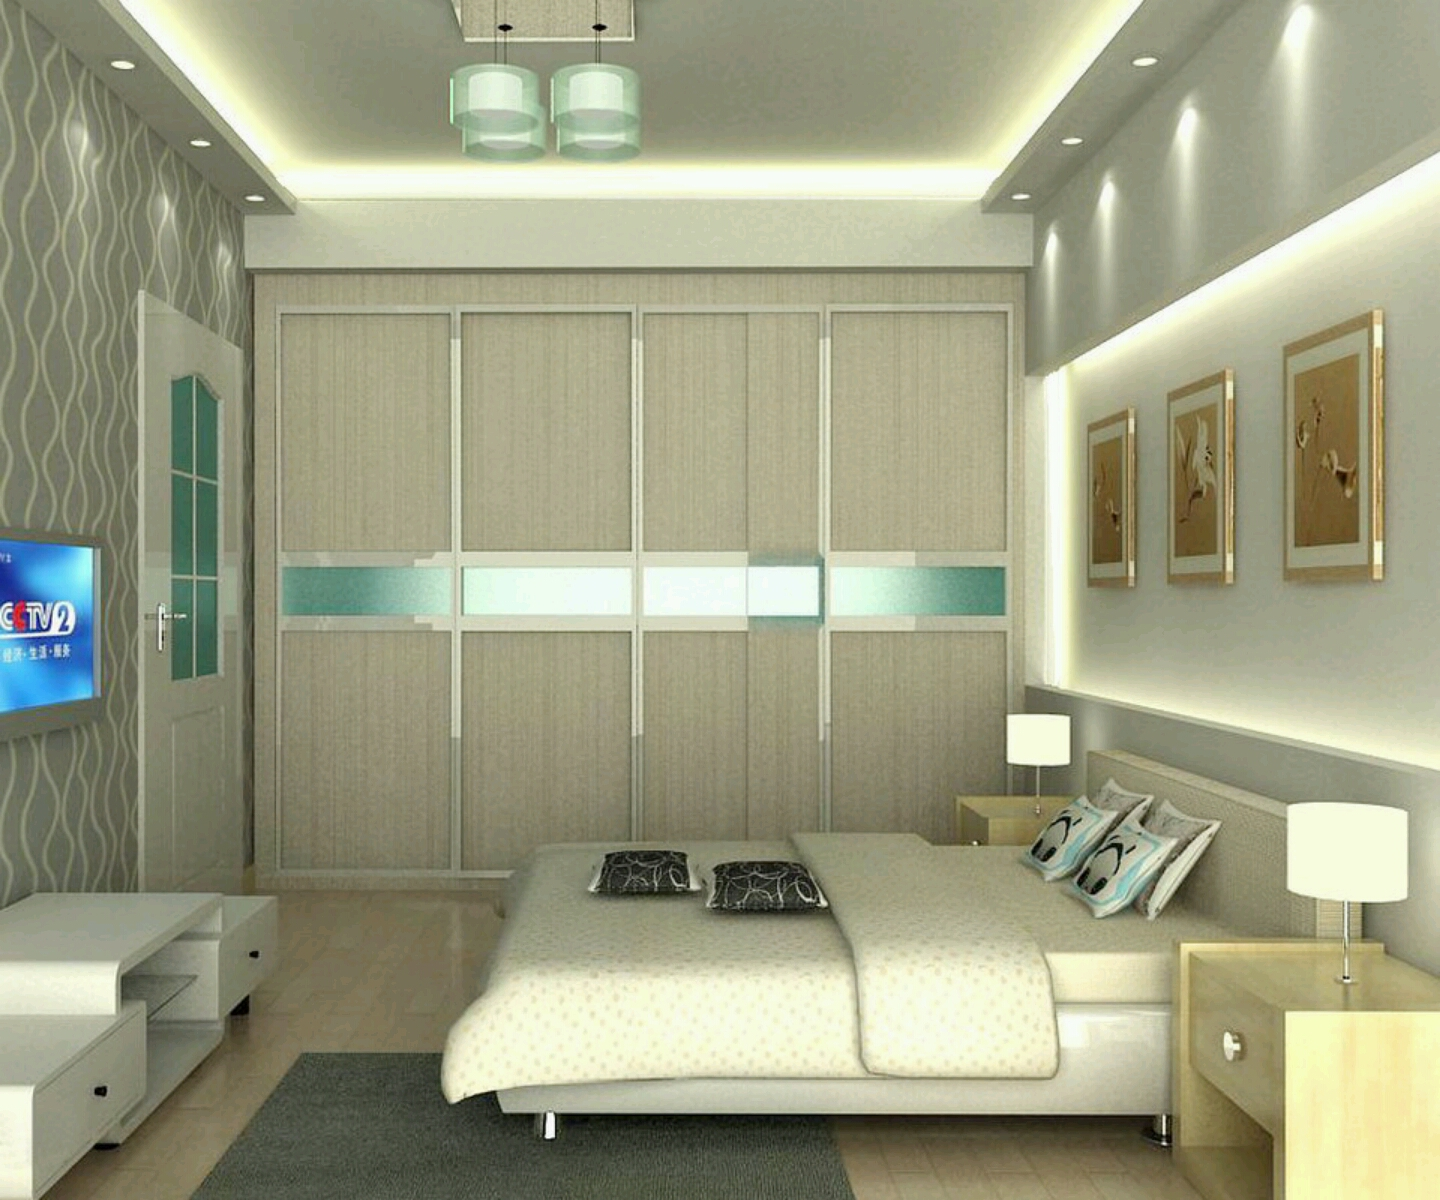 New home designs latest.: Modern homes bedrooms designs ...